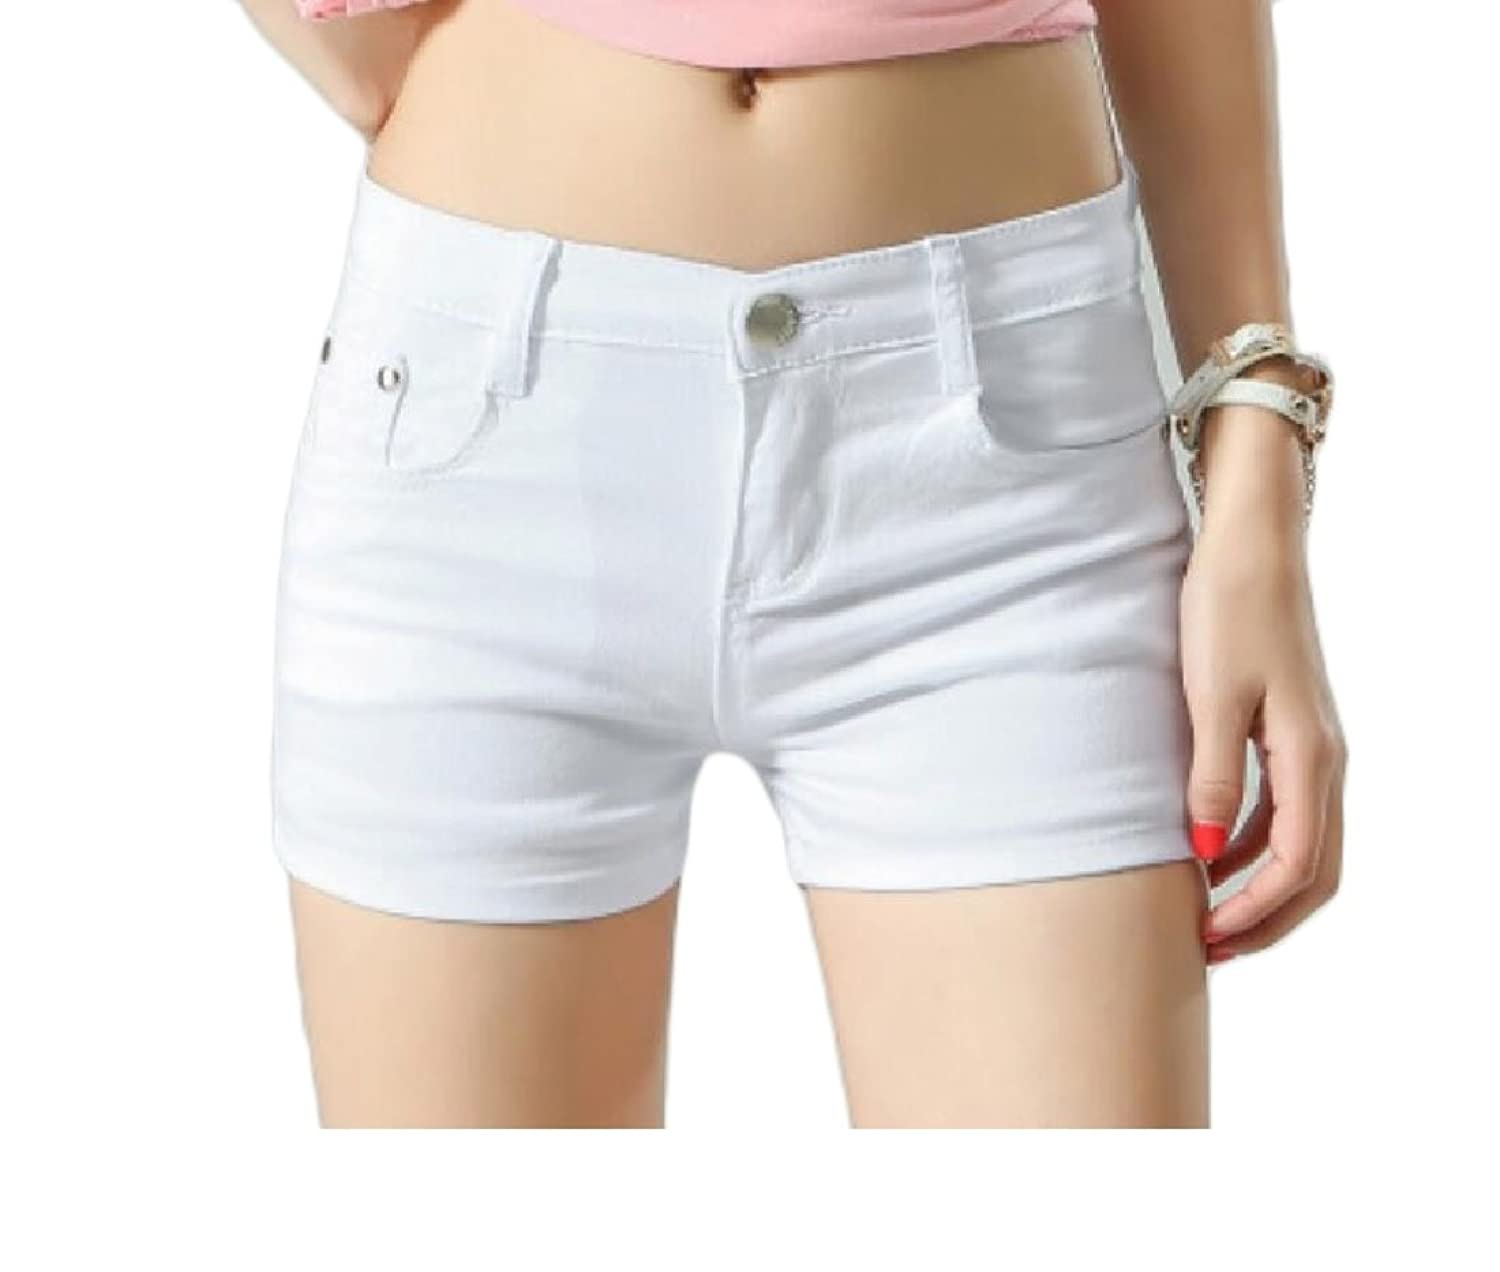 Abetteric Women Short Summer Shorts Skinny Summer Leisure Mulit Color Shorts Jeans White 2X